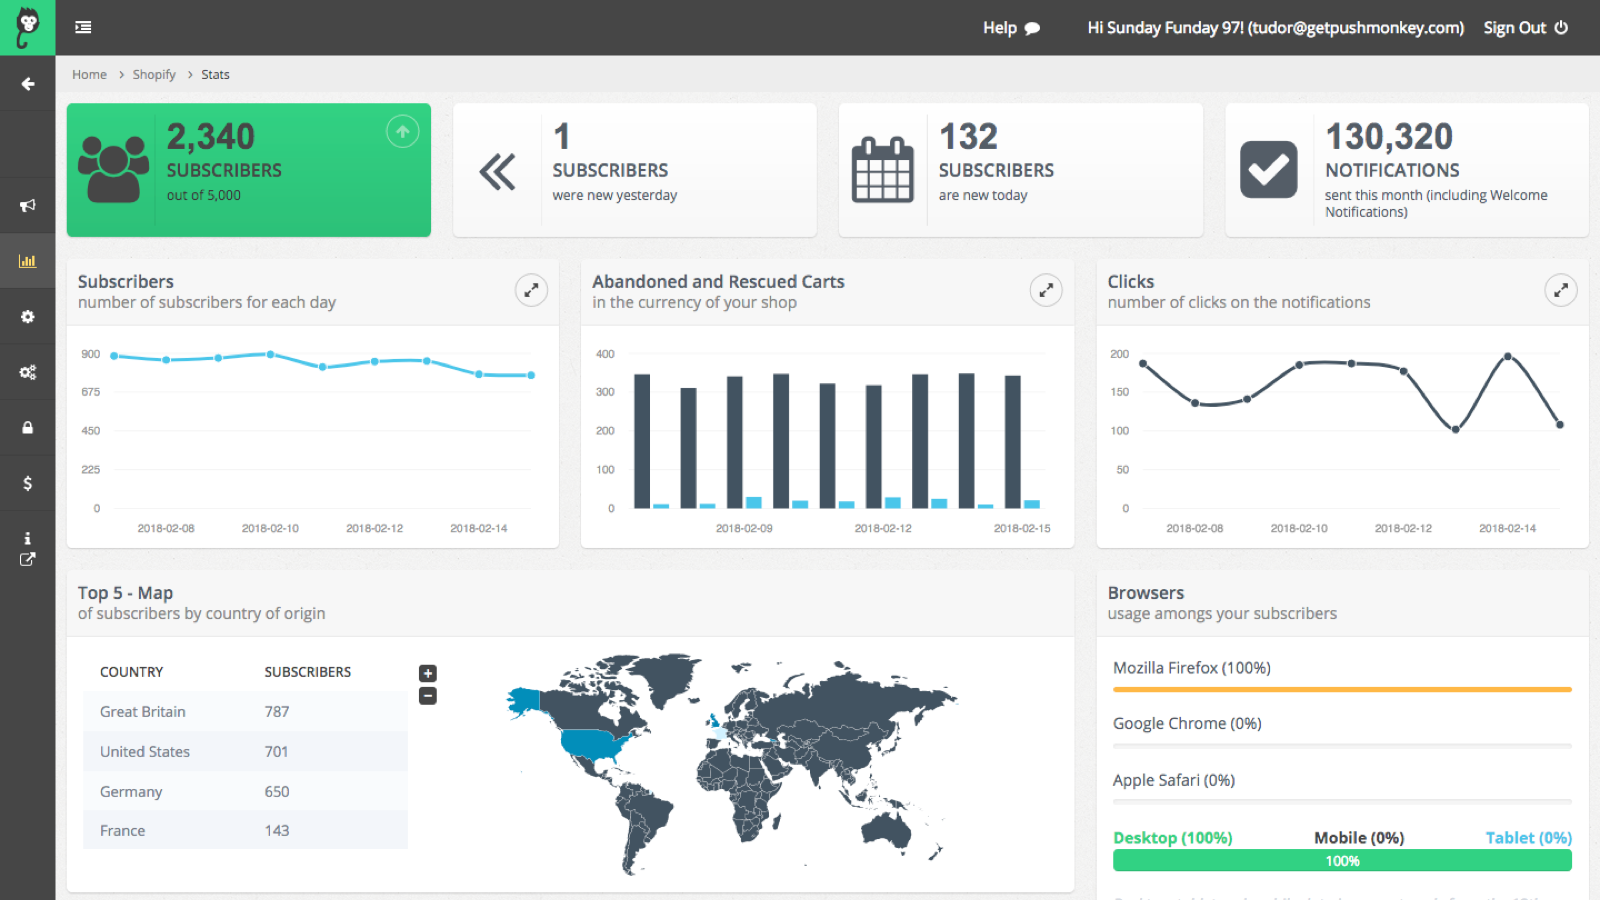 Dashboard with Statistics and Insights